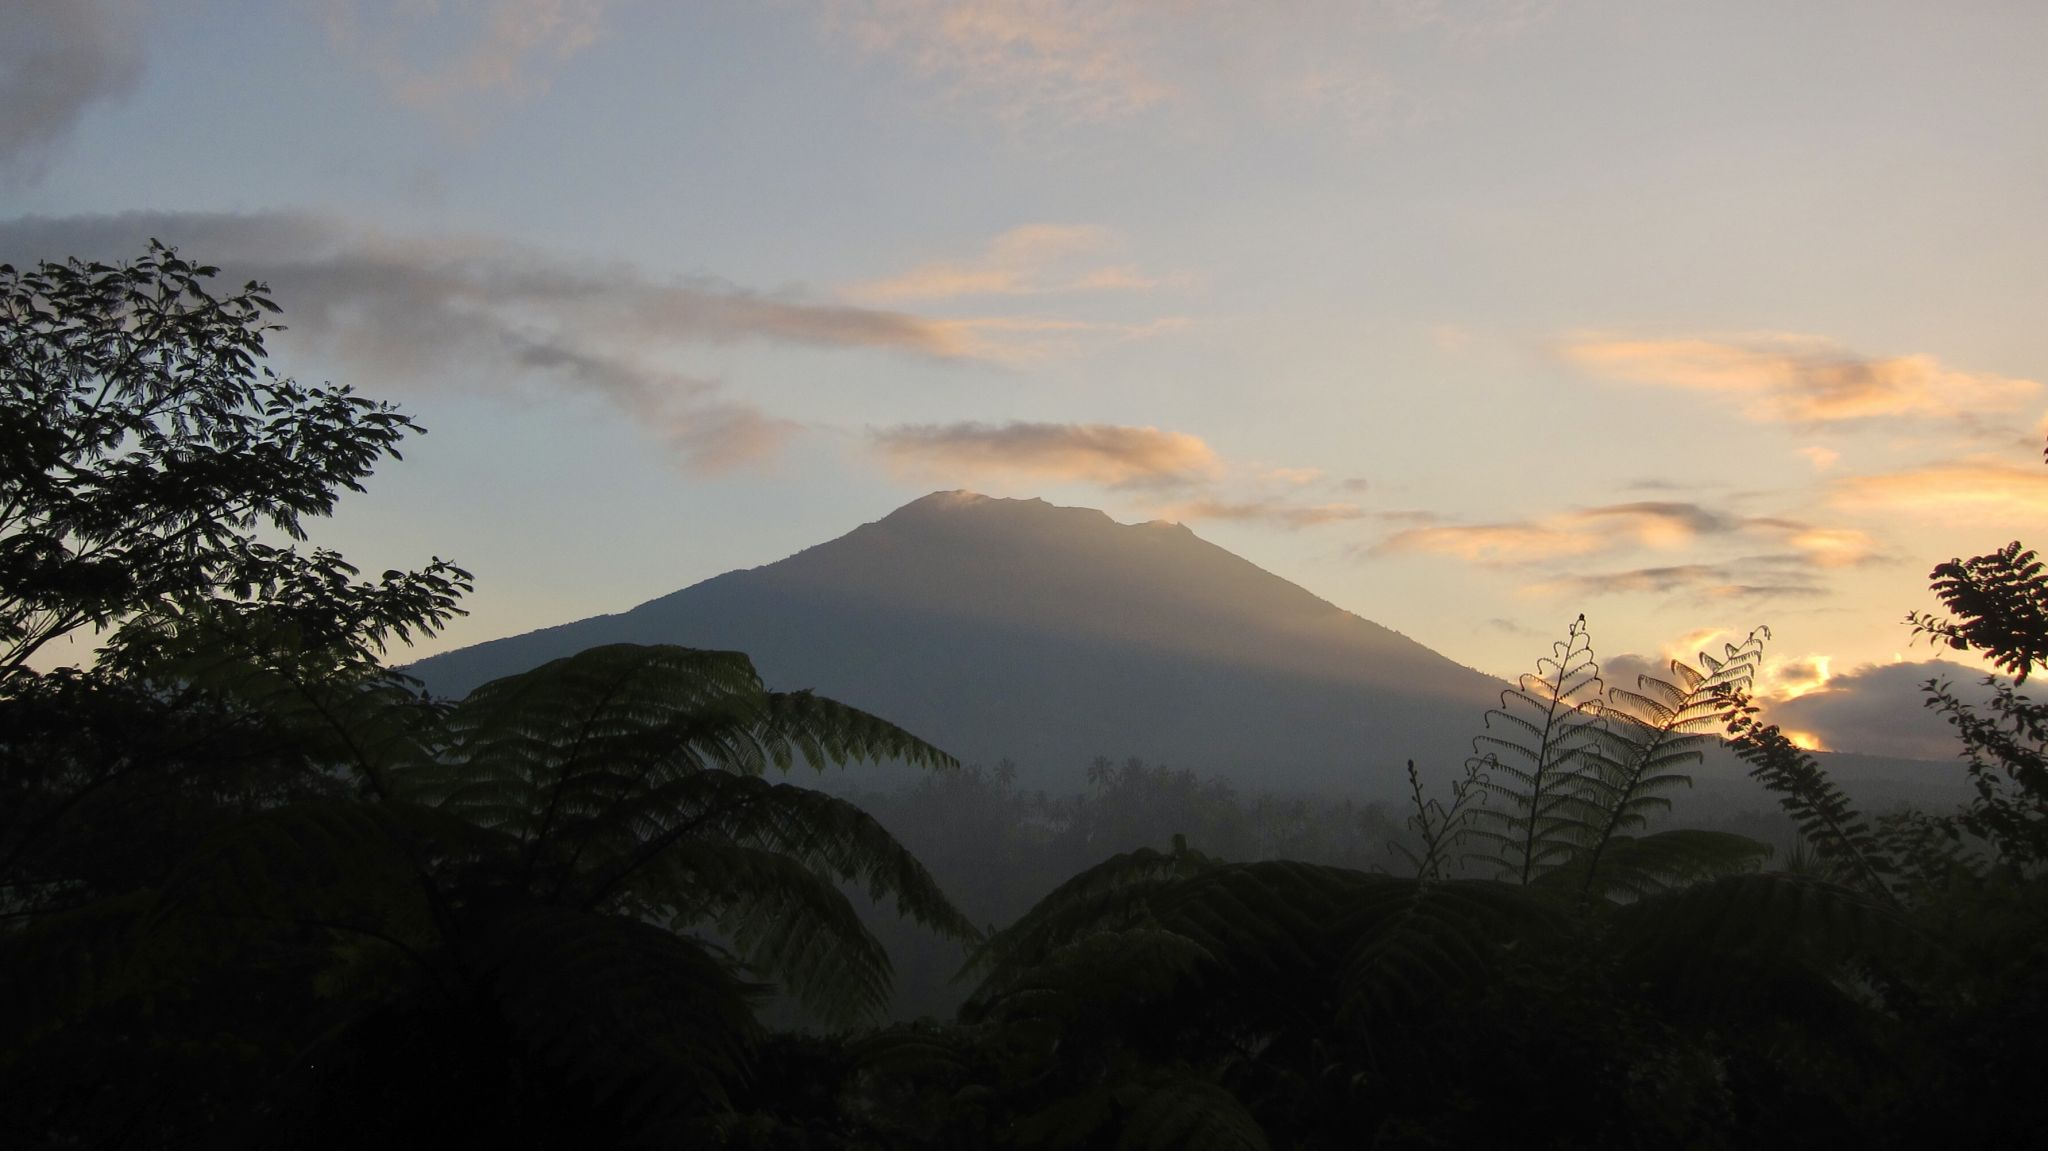 Mt. Agung from Mahagiri Panoramic Resort & Restaurant, Indonesia